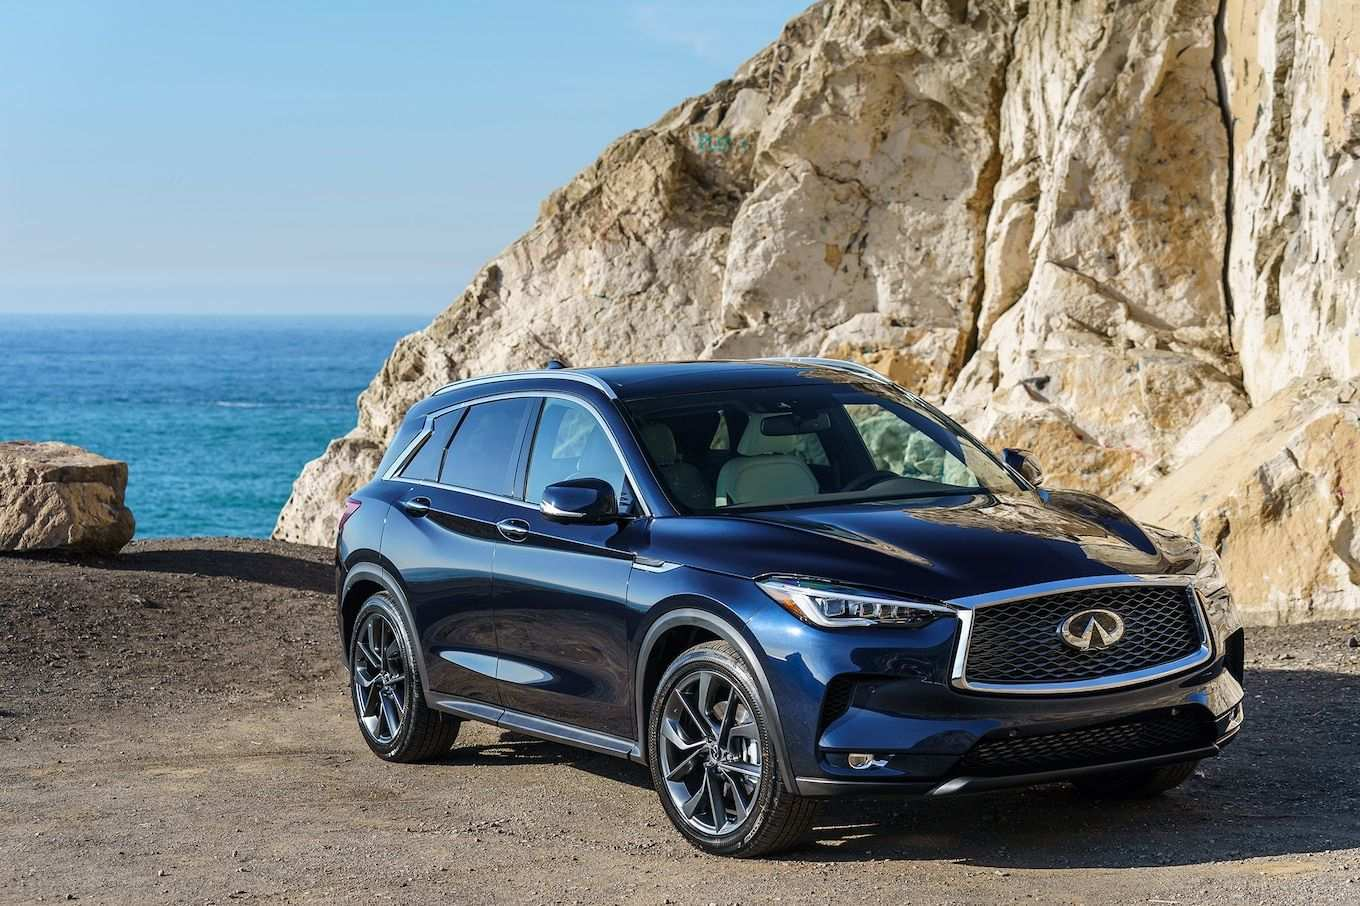 79 Great The Infiniti Qx50 2019 Hybrid Concept Redesign and Concept for The Infiniti Qx50 2019 Hybrid Concept